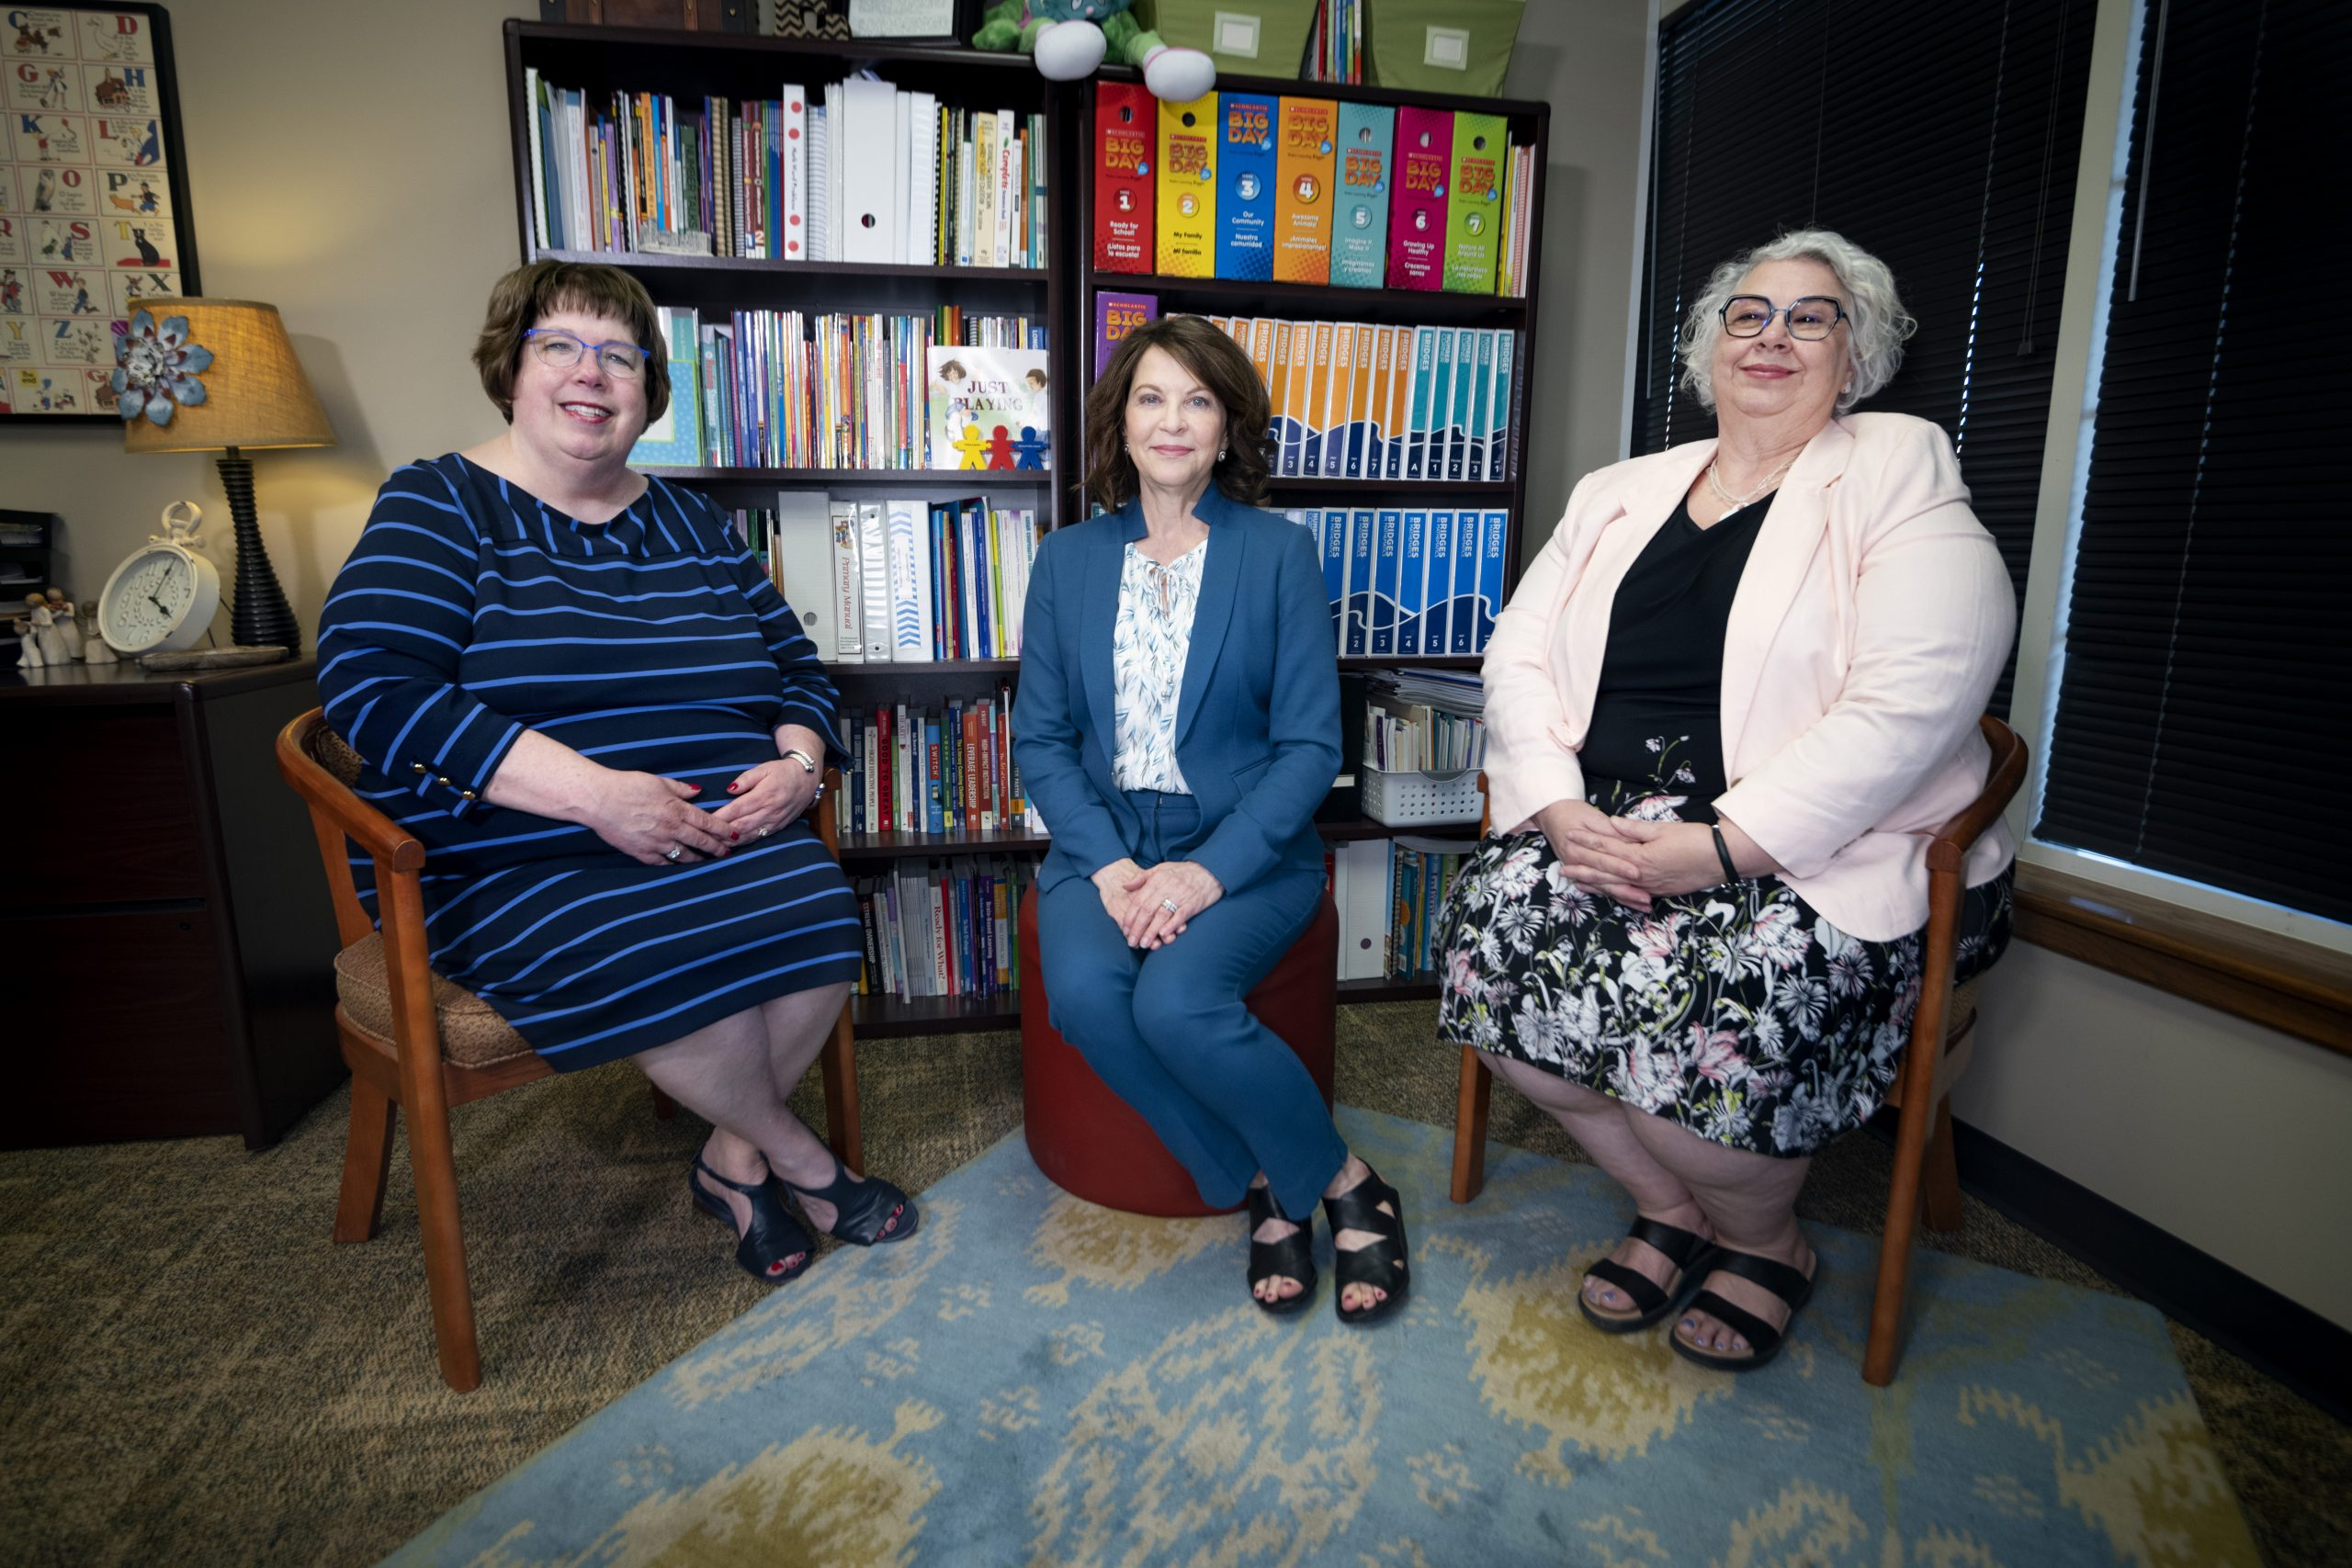 Retiring principals Cathie Bugg, Jessele Miller and Penny Gooch sit in an office together